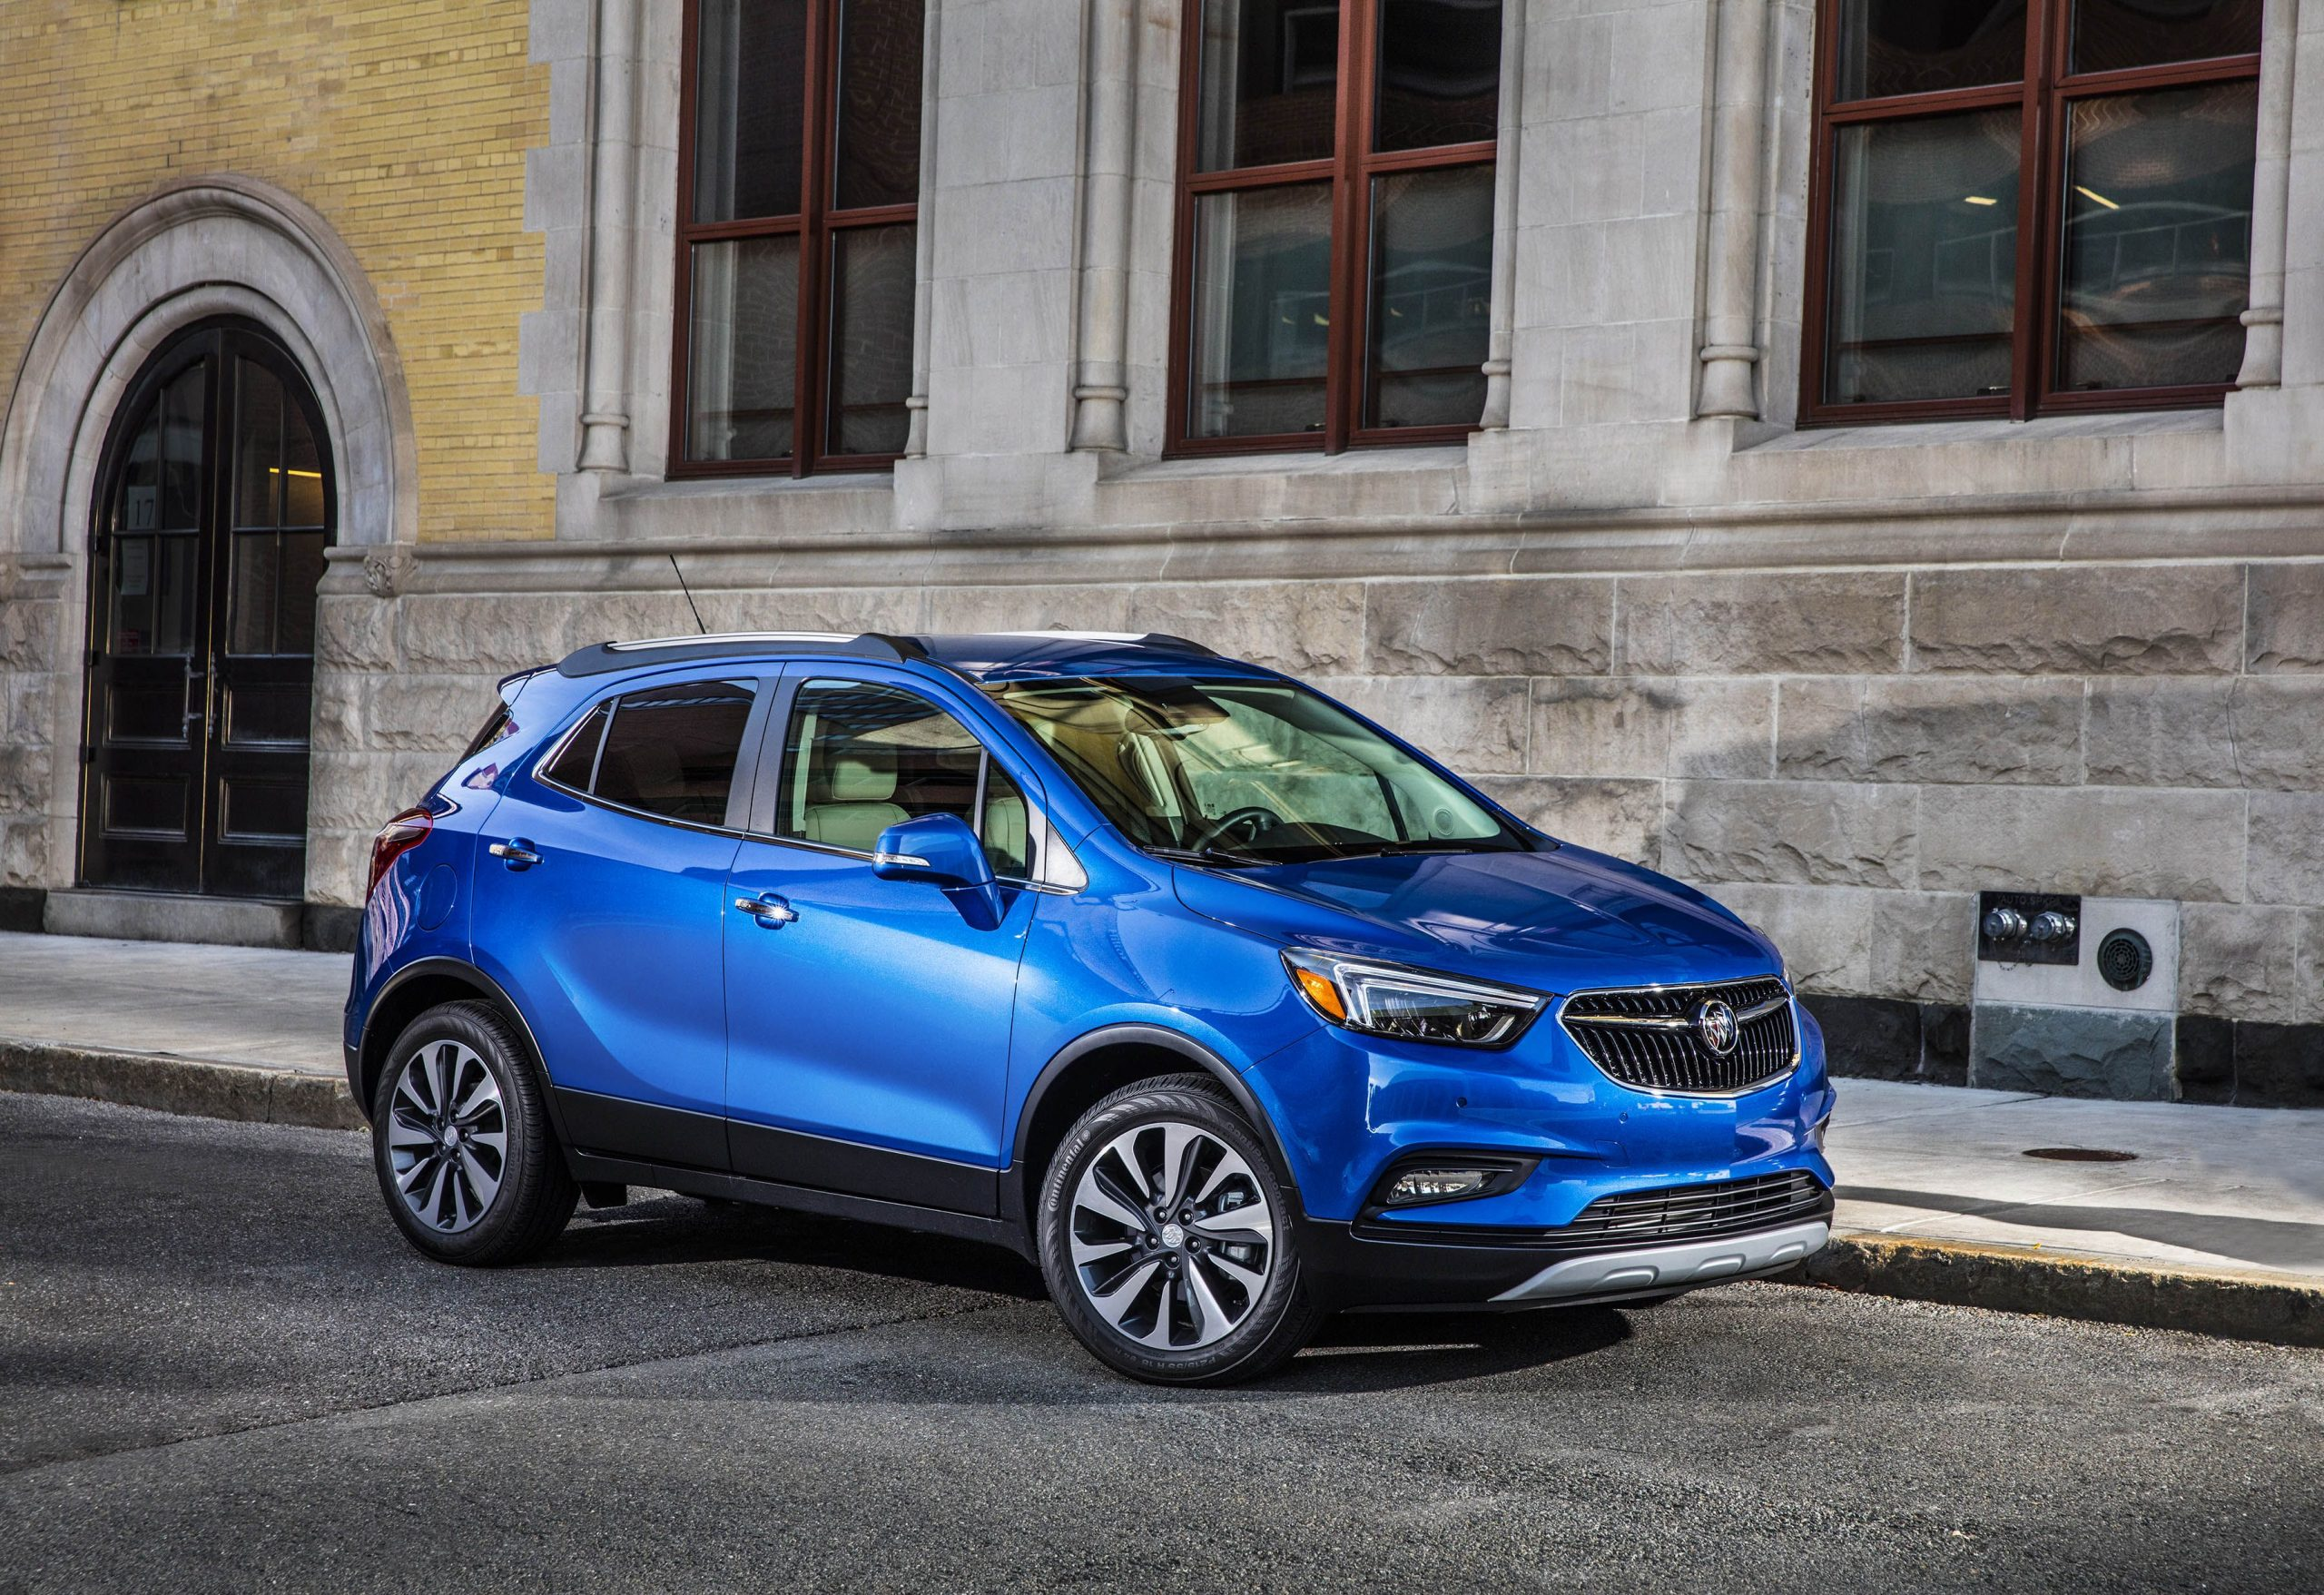 2020 Buick Encore Review, Pricing, And Specs New 2022 Buick Encore Essence Reviews, Fwd, Specs